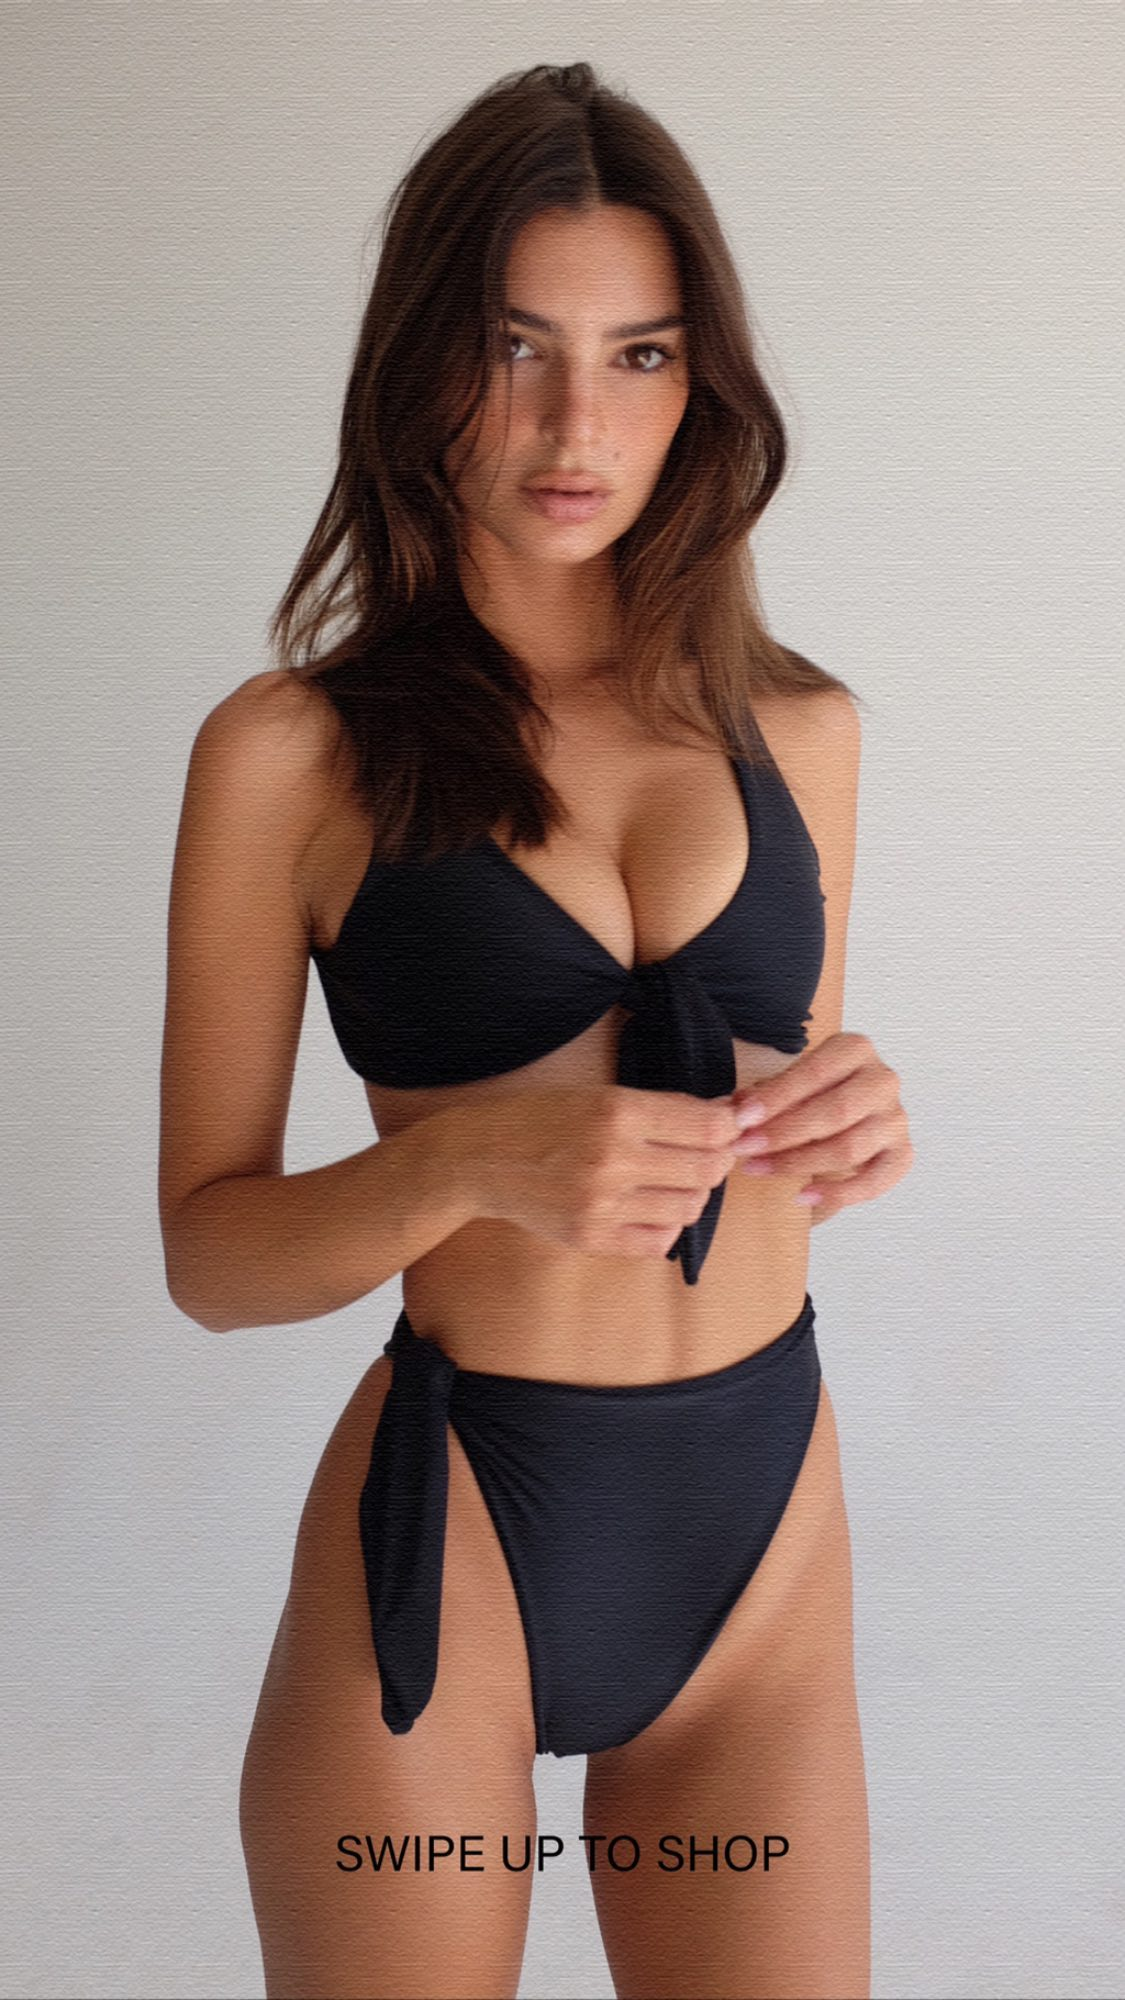 Emily Ratajkowski – New social photos